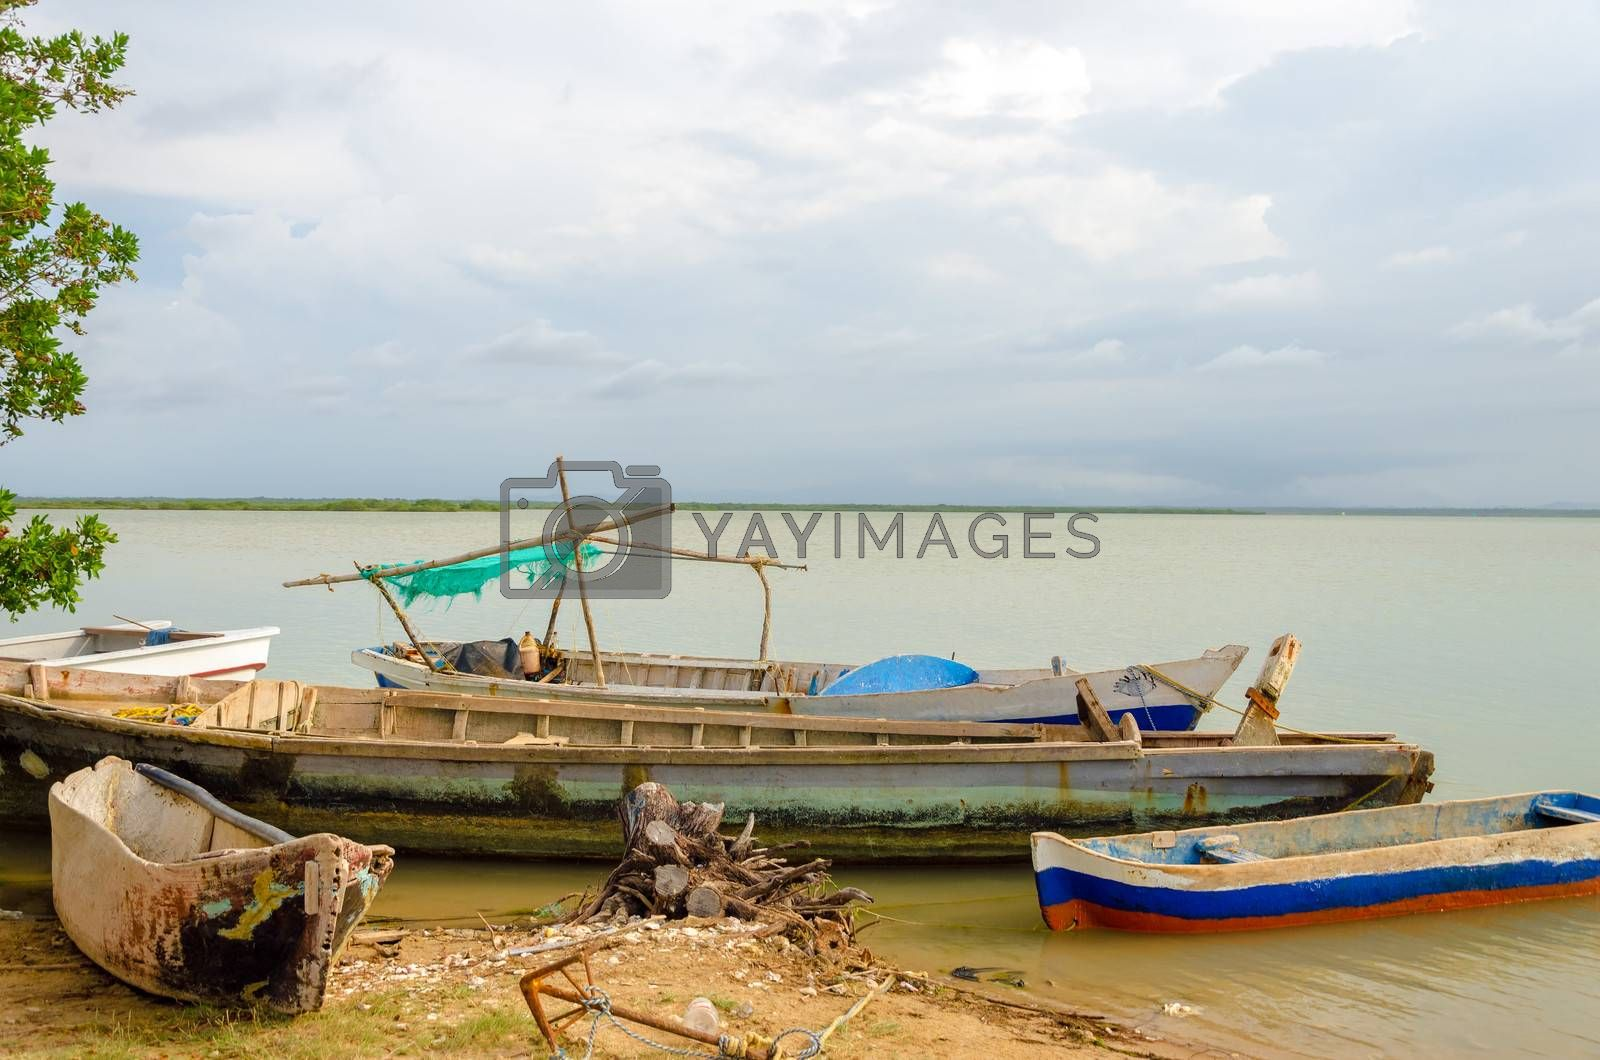 Old canoes on the shore of a lagoon in Camarones in La Guajira, Colombia